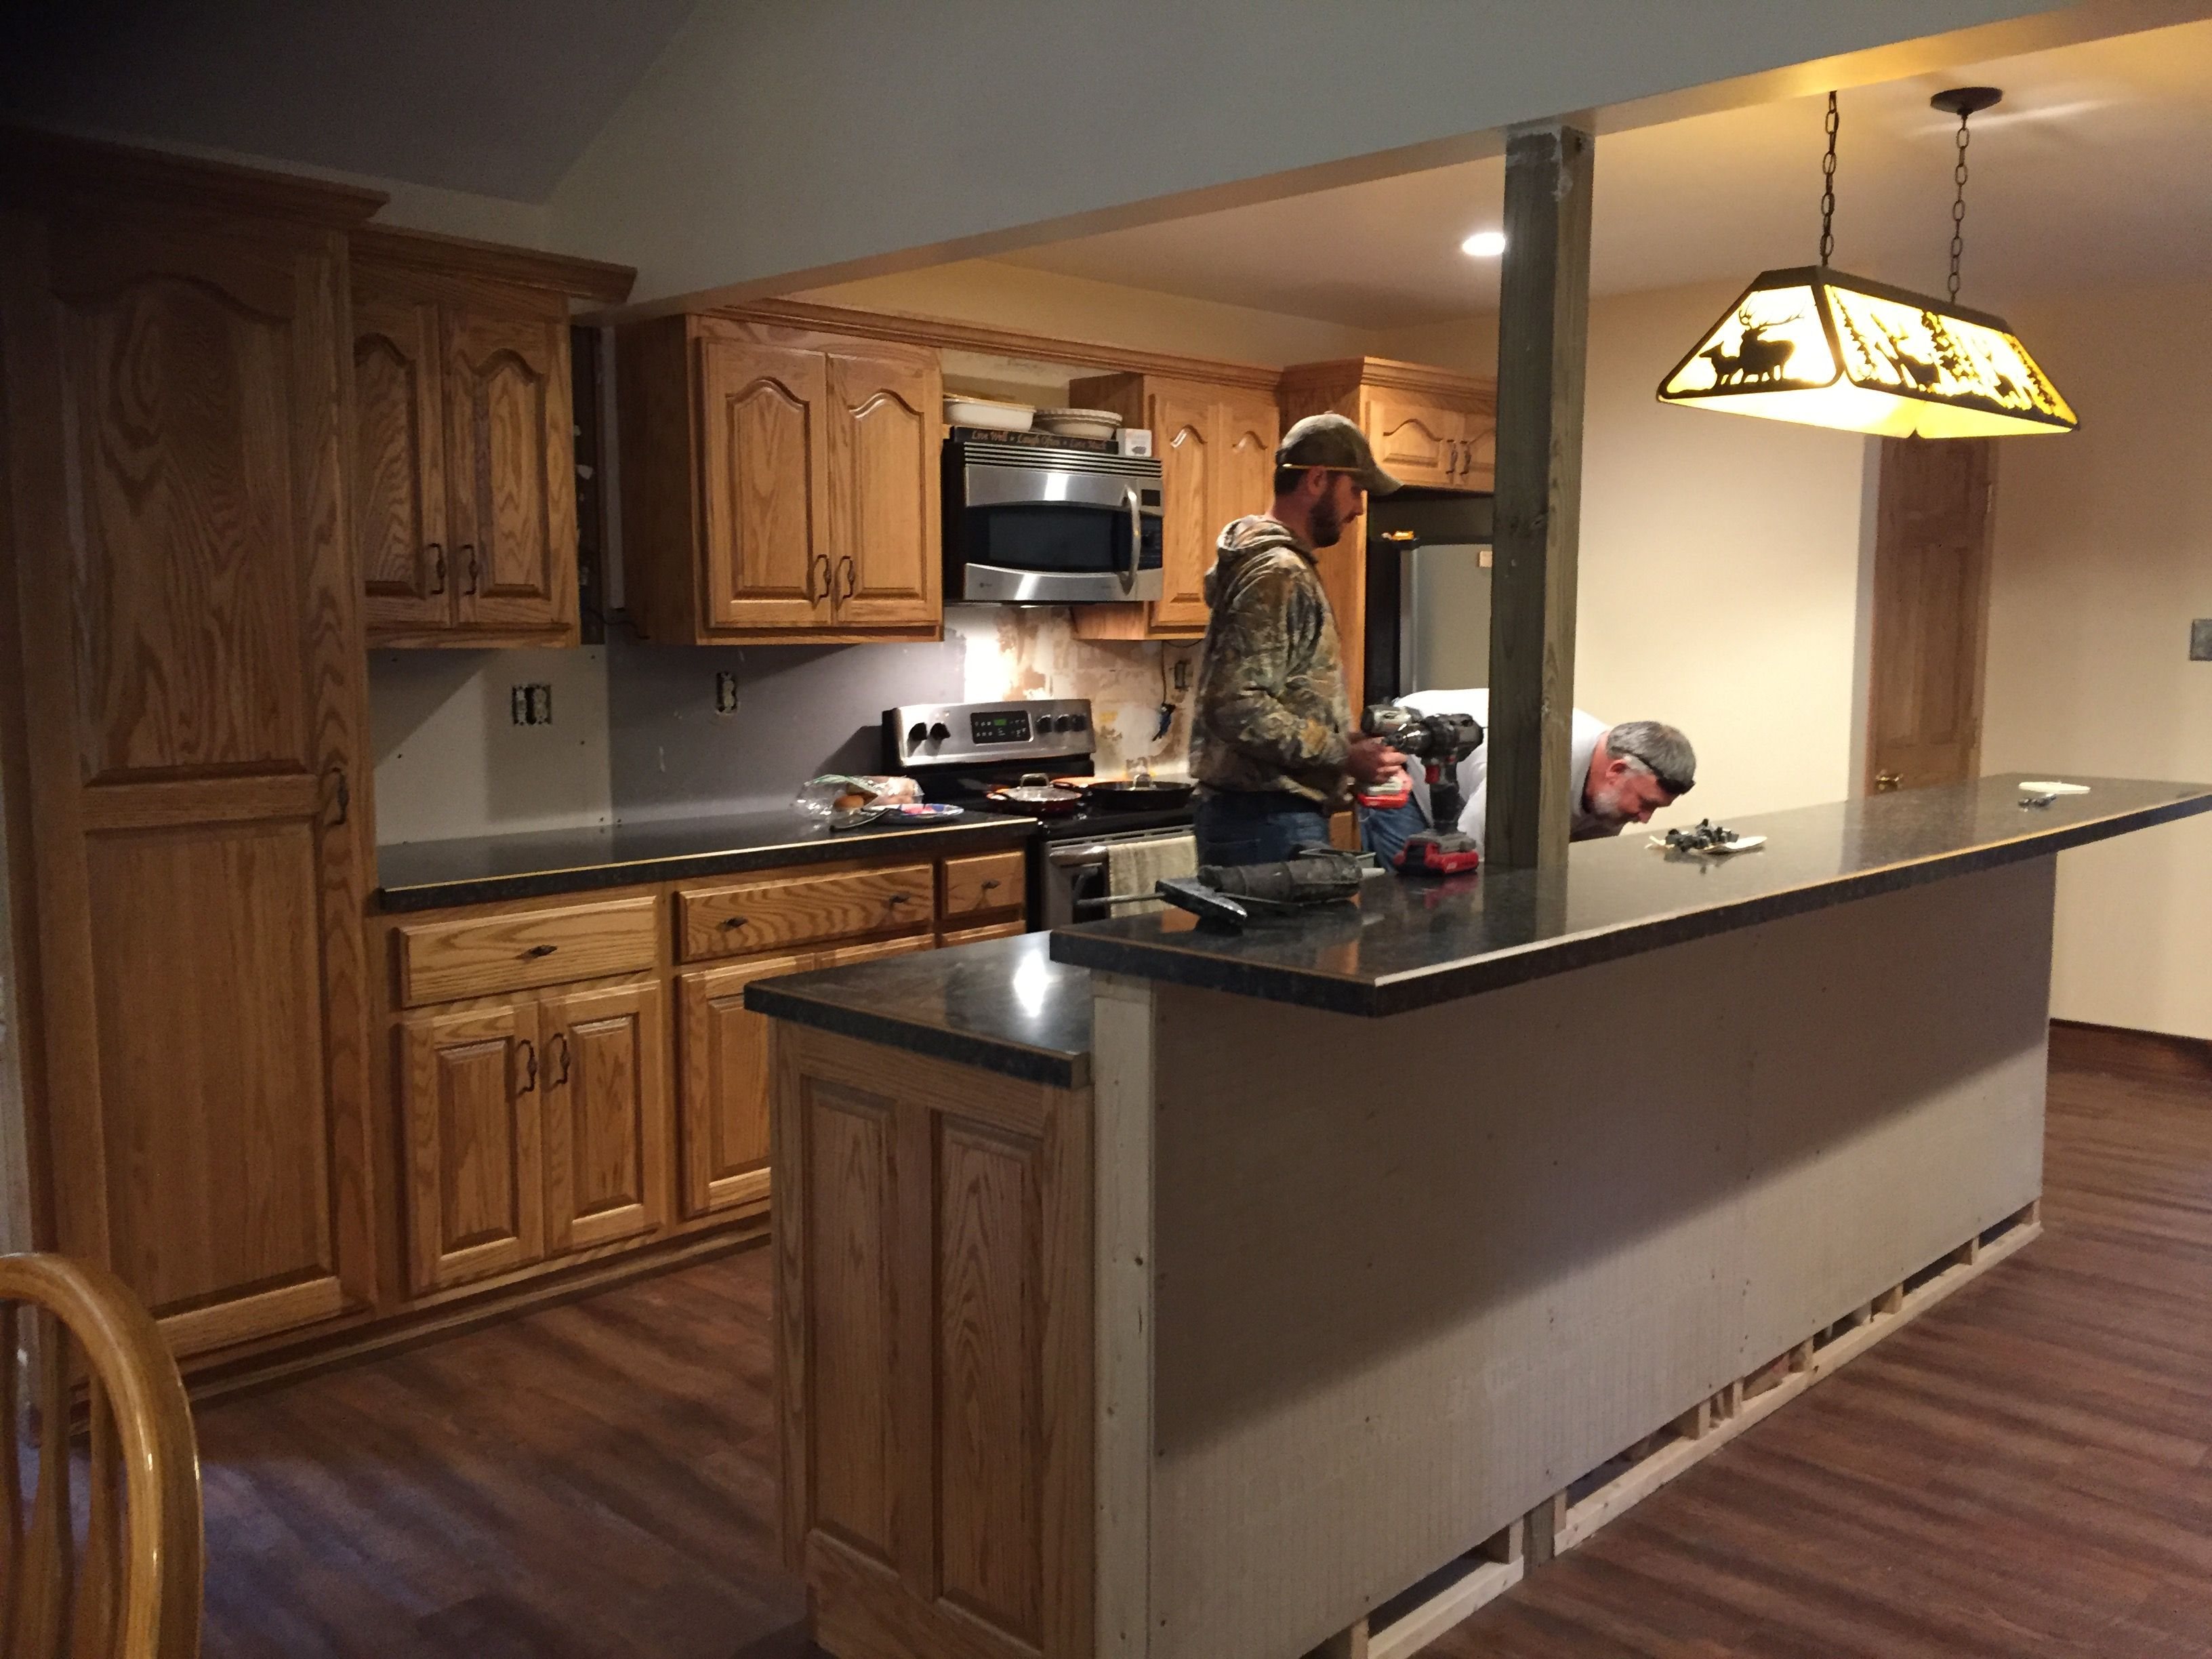 Installing Countertop With Oak Trim Kitchen Remodel How To Install Countertops Rustic Kitchen